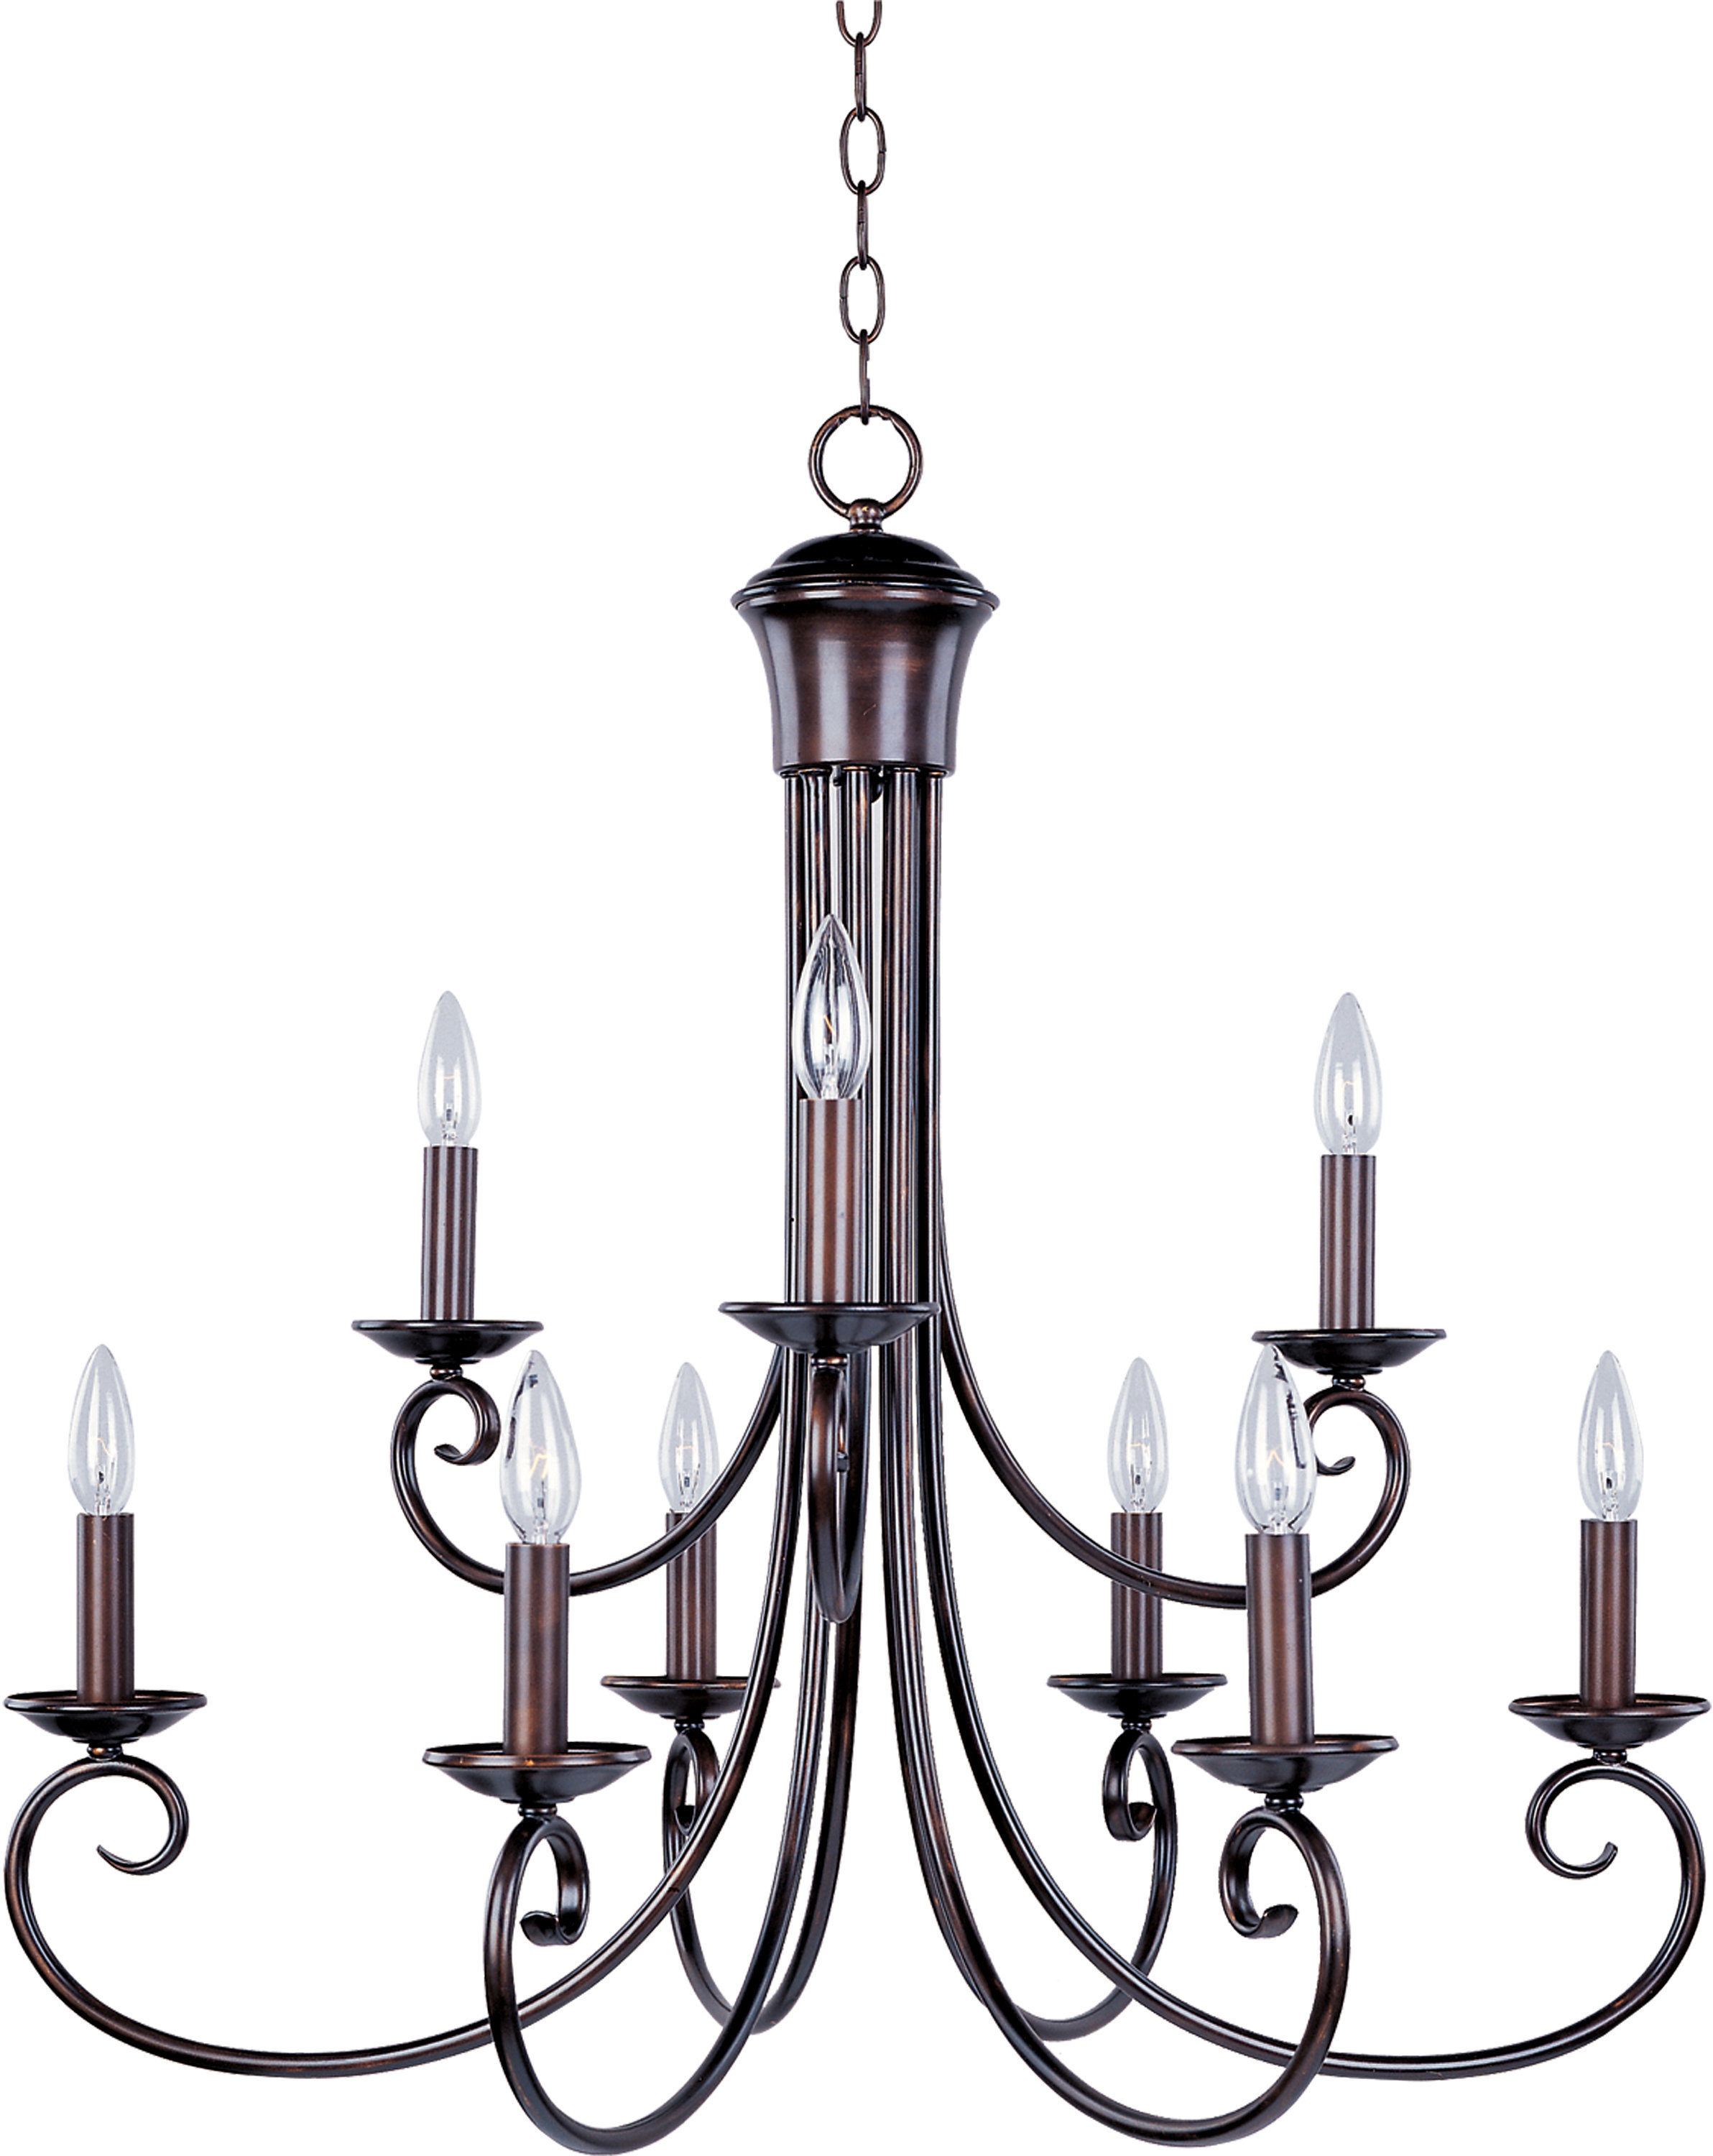 Watford 9 Light Candle Style Chandeliers Regarding Well Liked Charlton Home Kenedy 9 Light Candle Style Chandelier (Gallery 9 of 20)